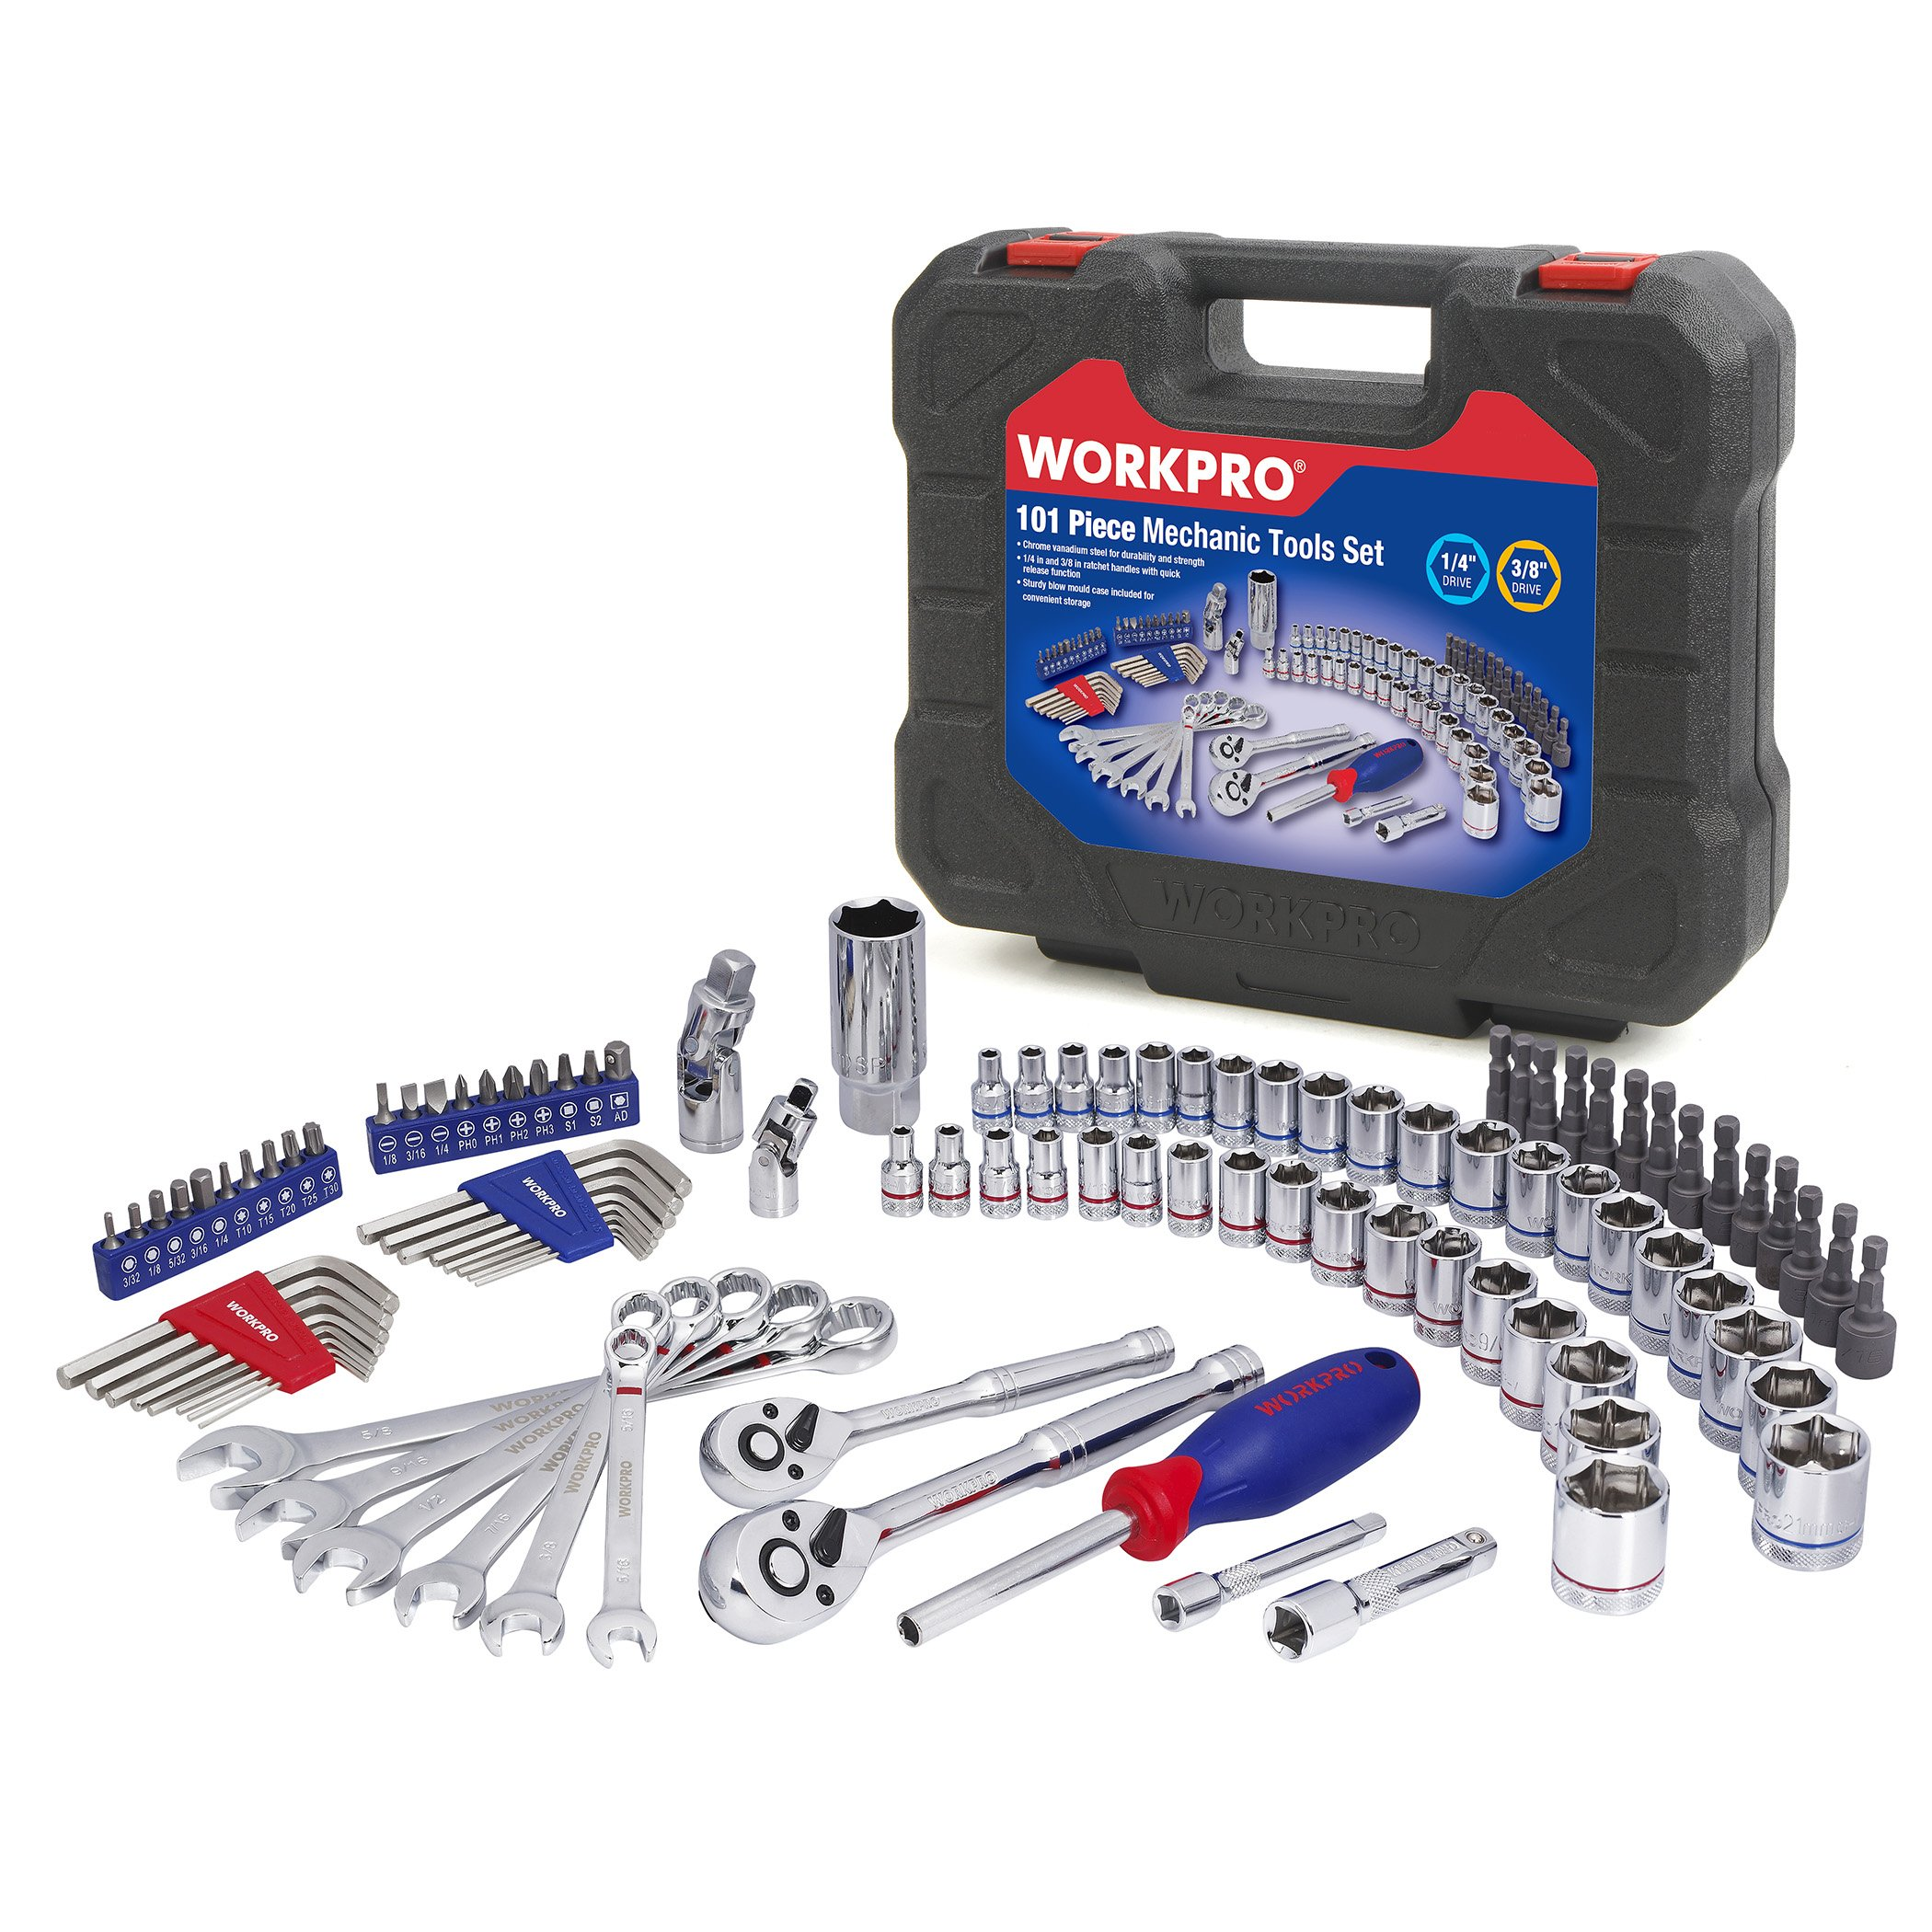 WORKPRO Drive Socket Wrench Set, 101-piece Mechanics Tools Kit 3/8-inch and 1/4-inch Quick-Release Ratchets, 6-Point SAE and Metric Sockets, with Blow Molded Case by WORKPRO